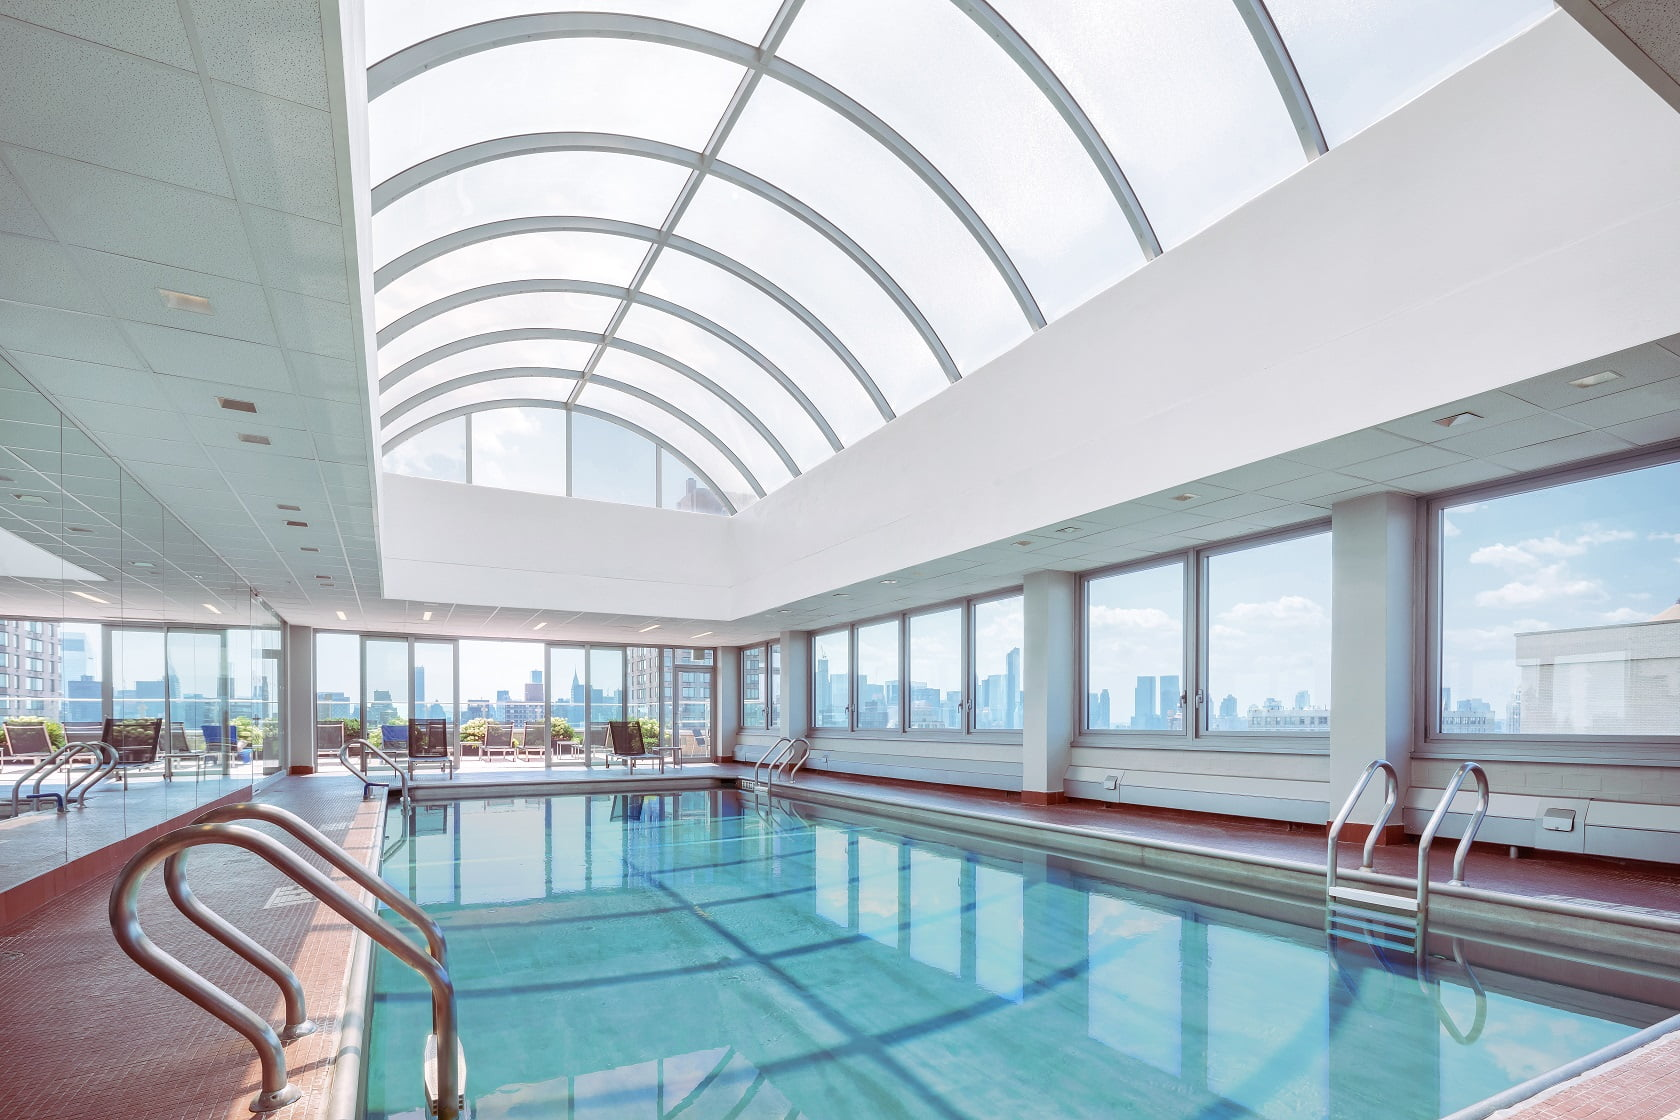 View of interior pool at Gracie Mews Health Club located at 401 East 80th Street